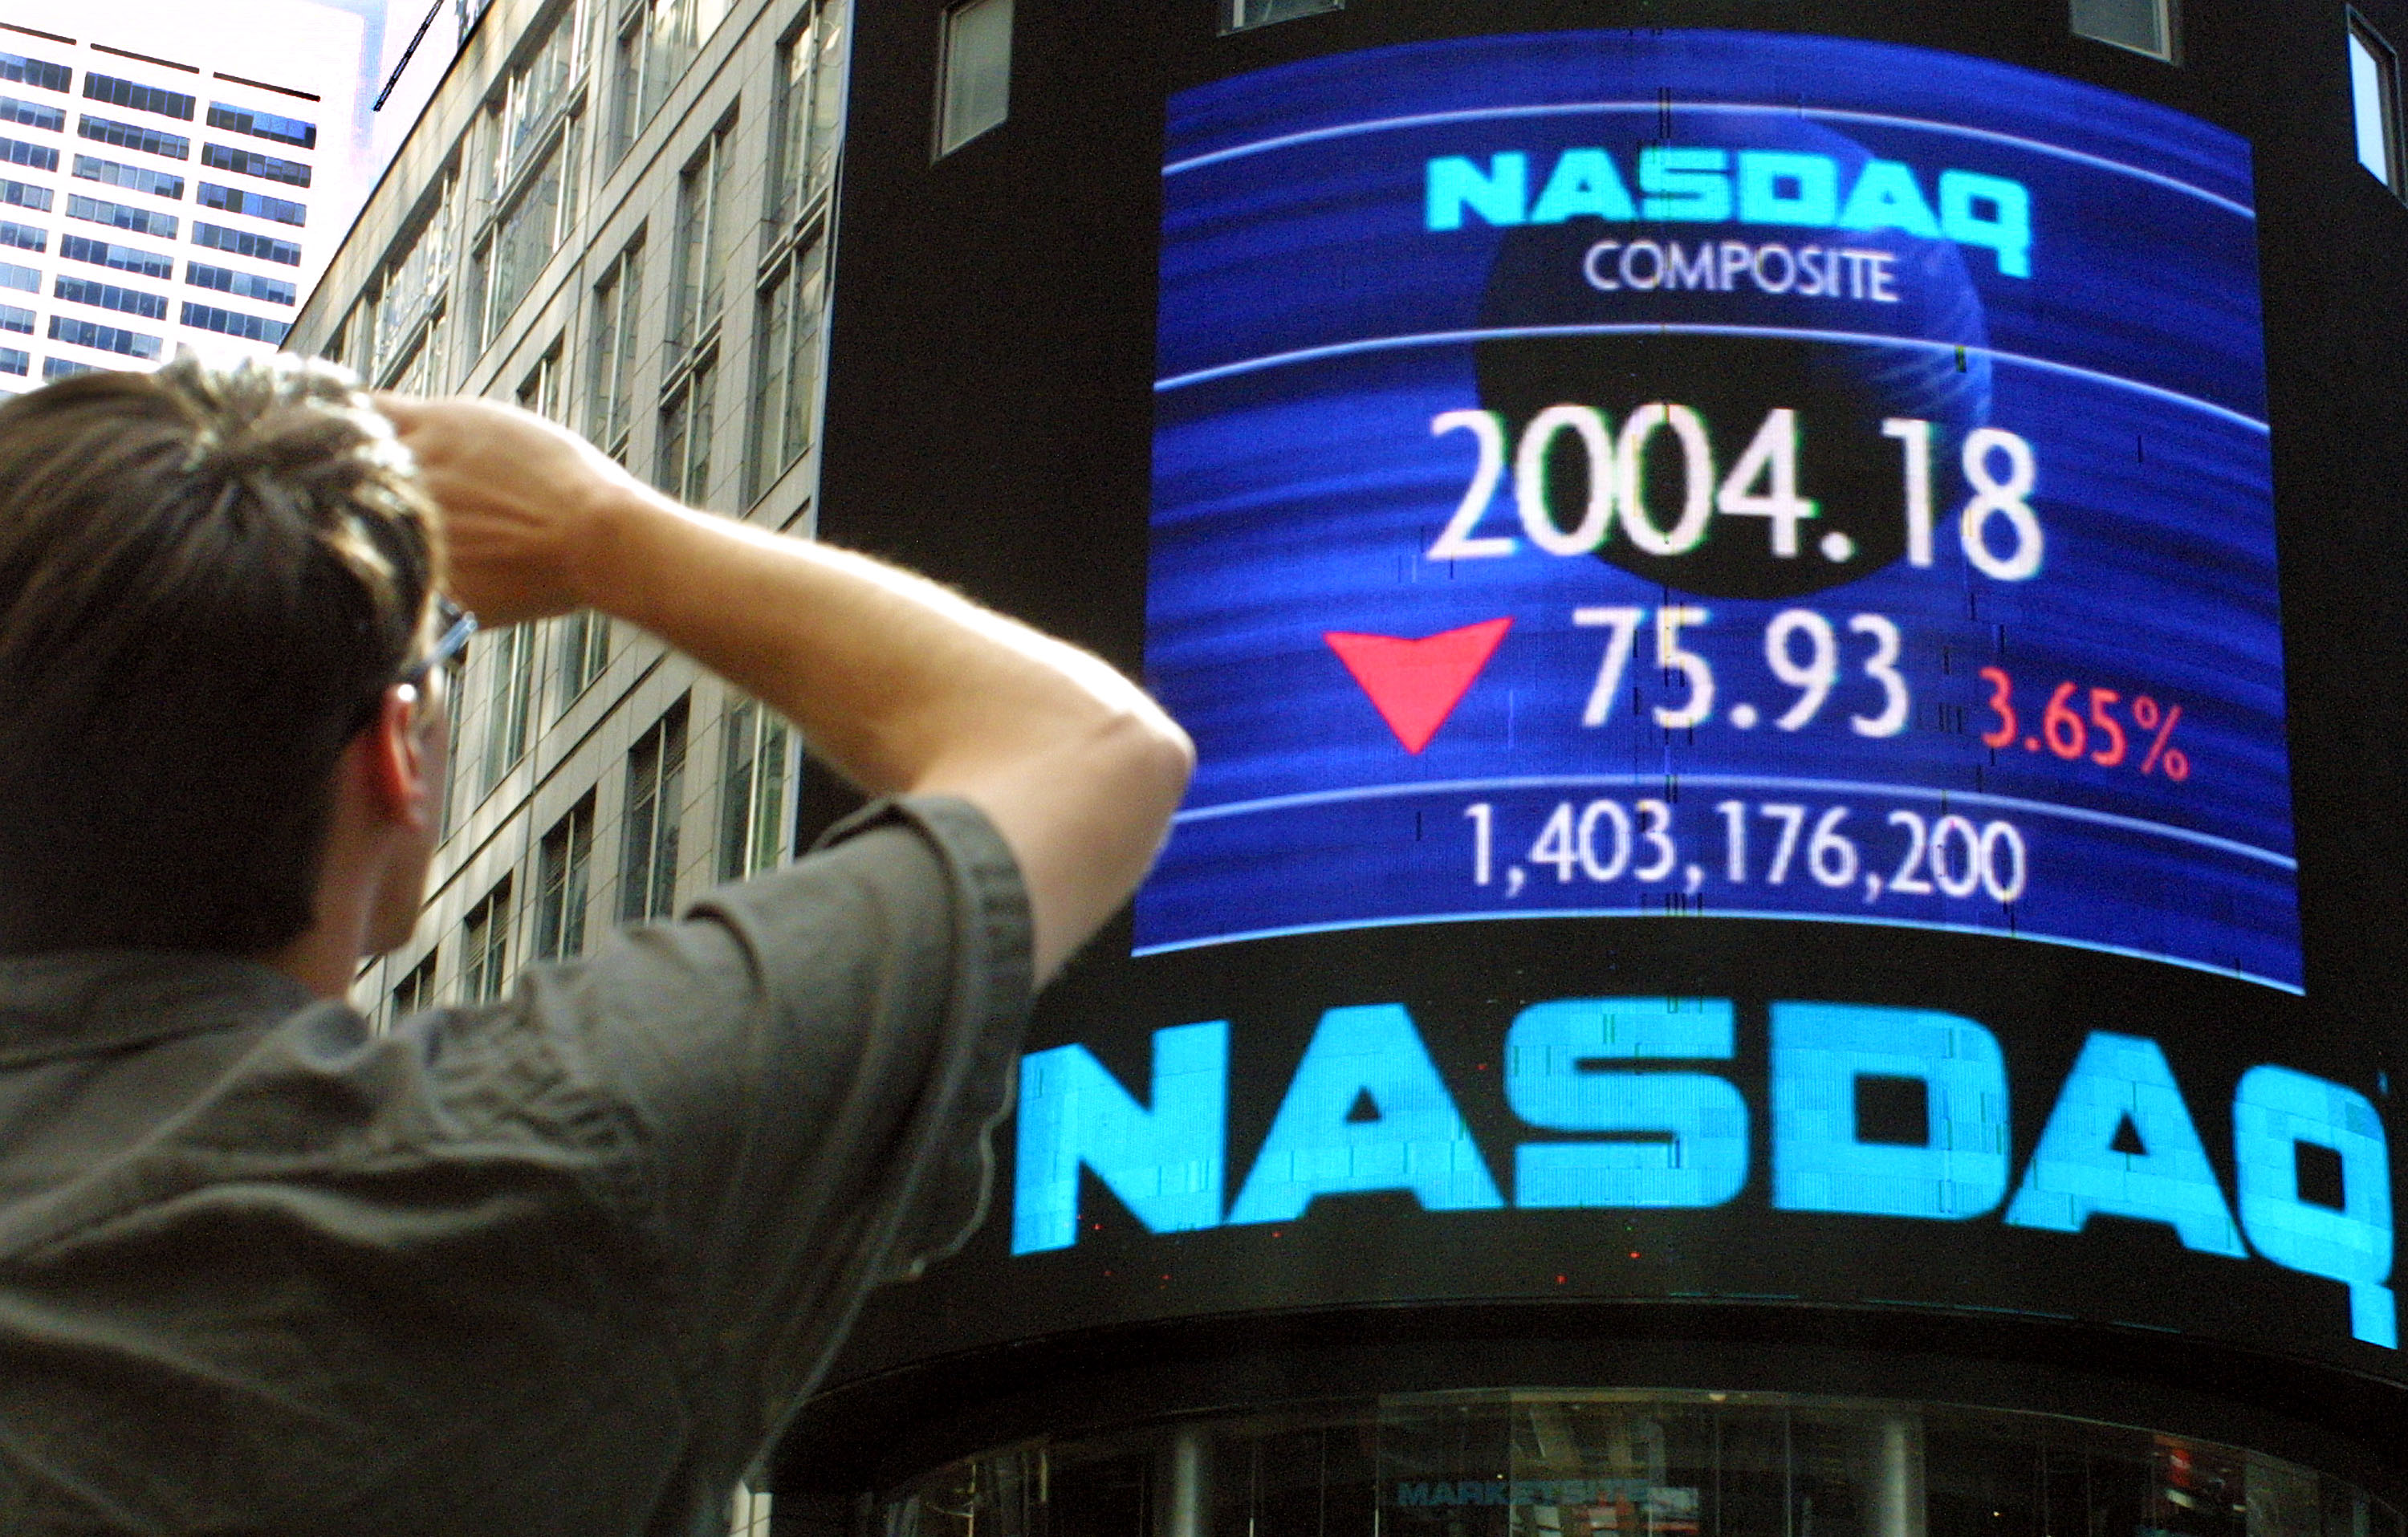 Recode dropbox ipo shares are priced at 21 higher than expected fandeluxe Gallery